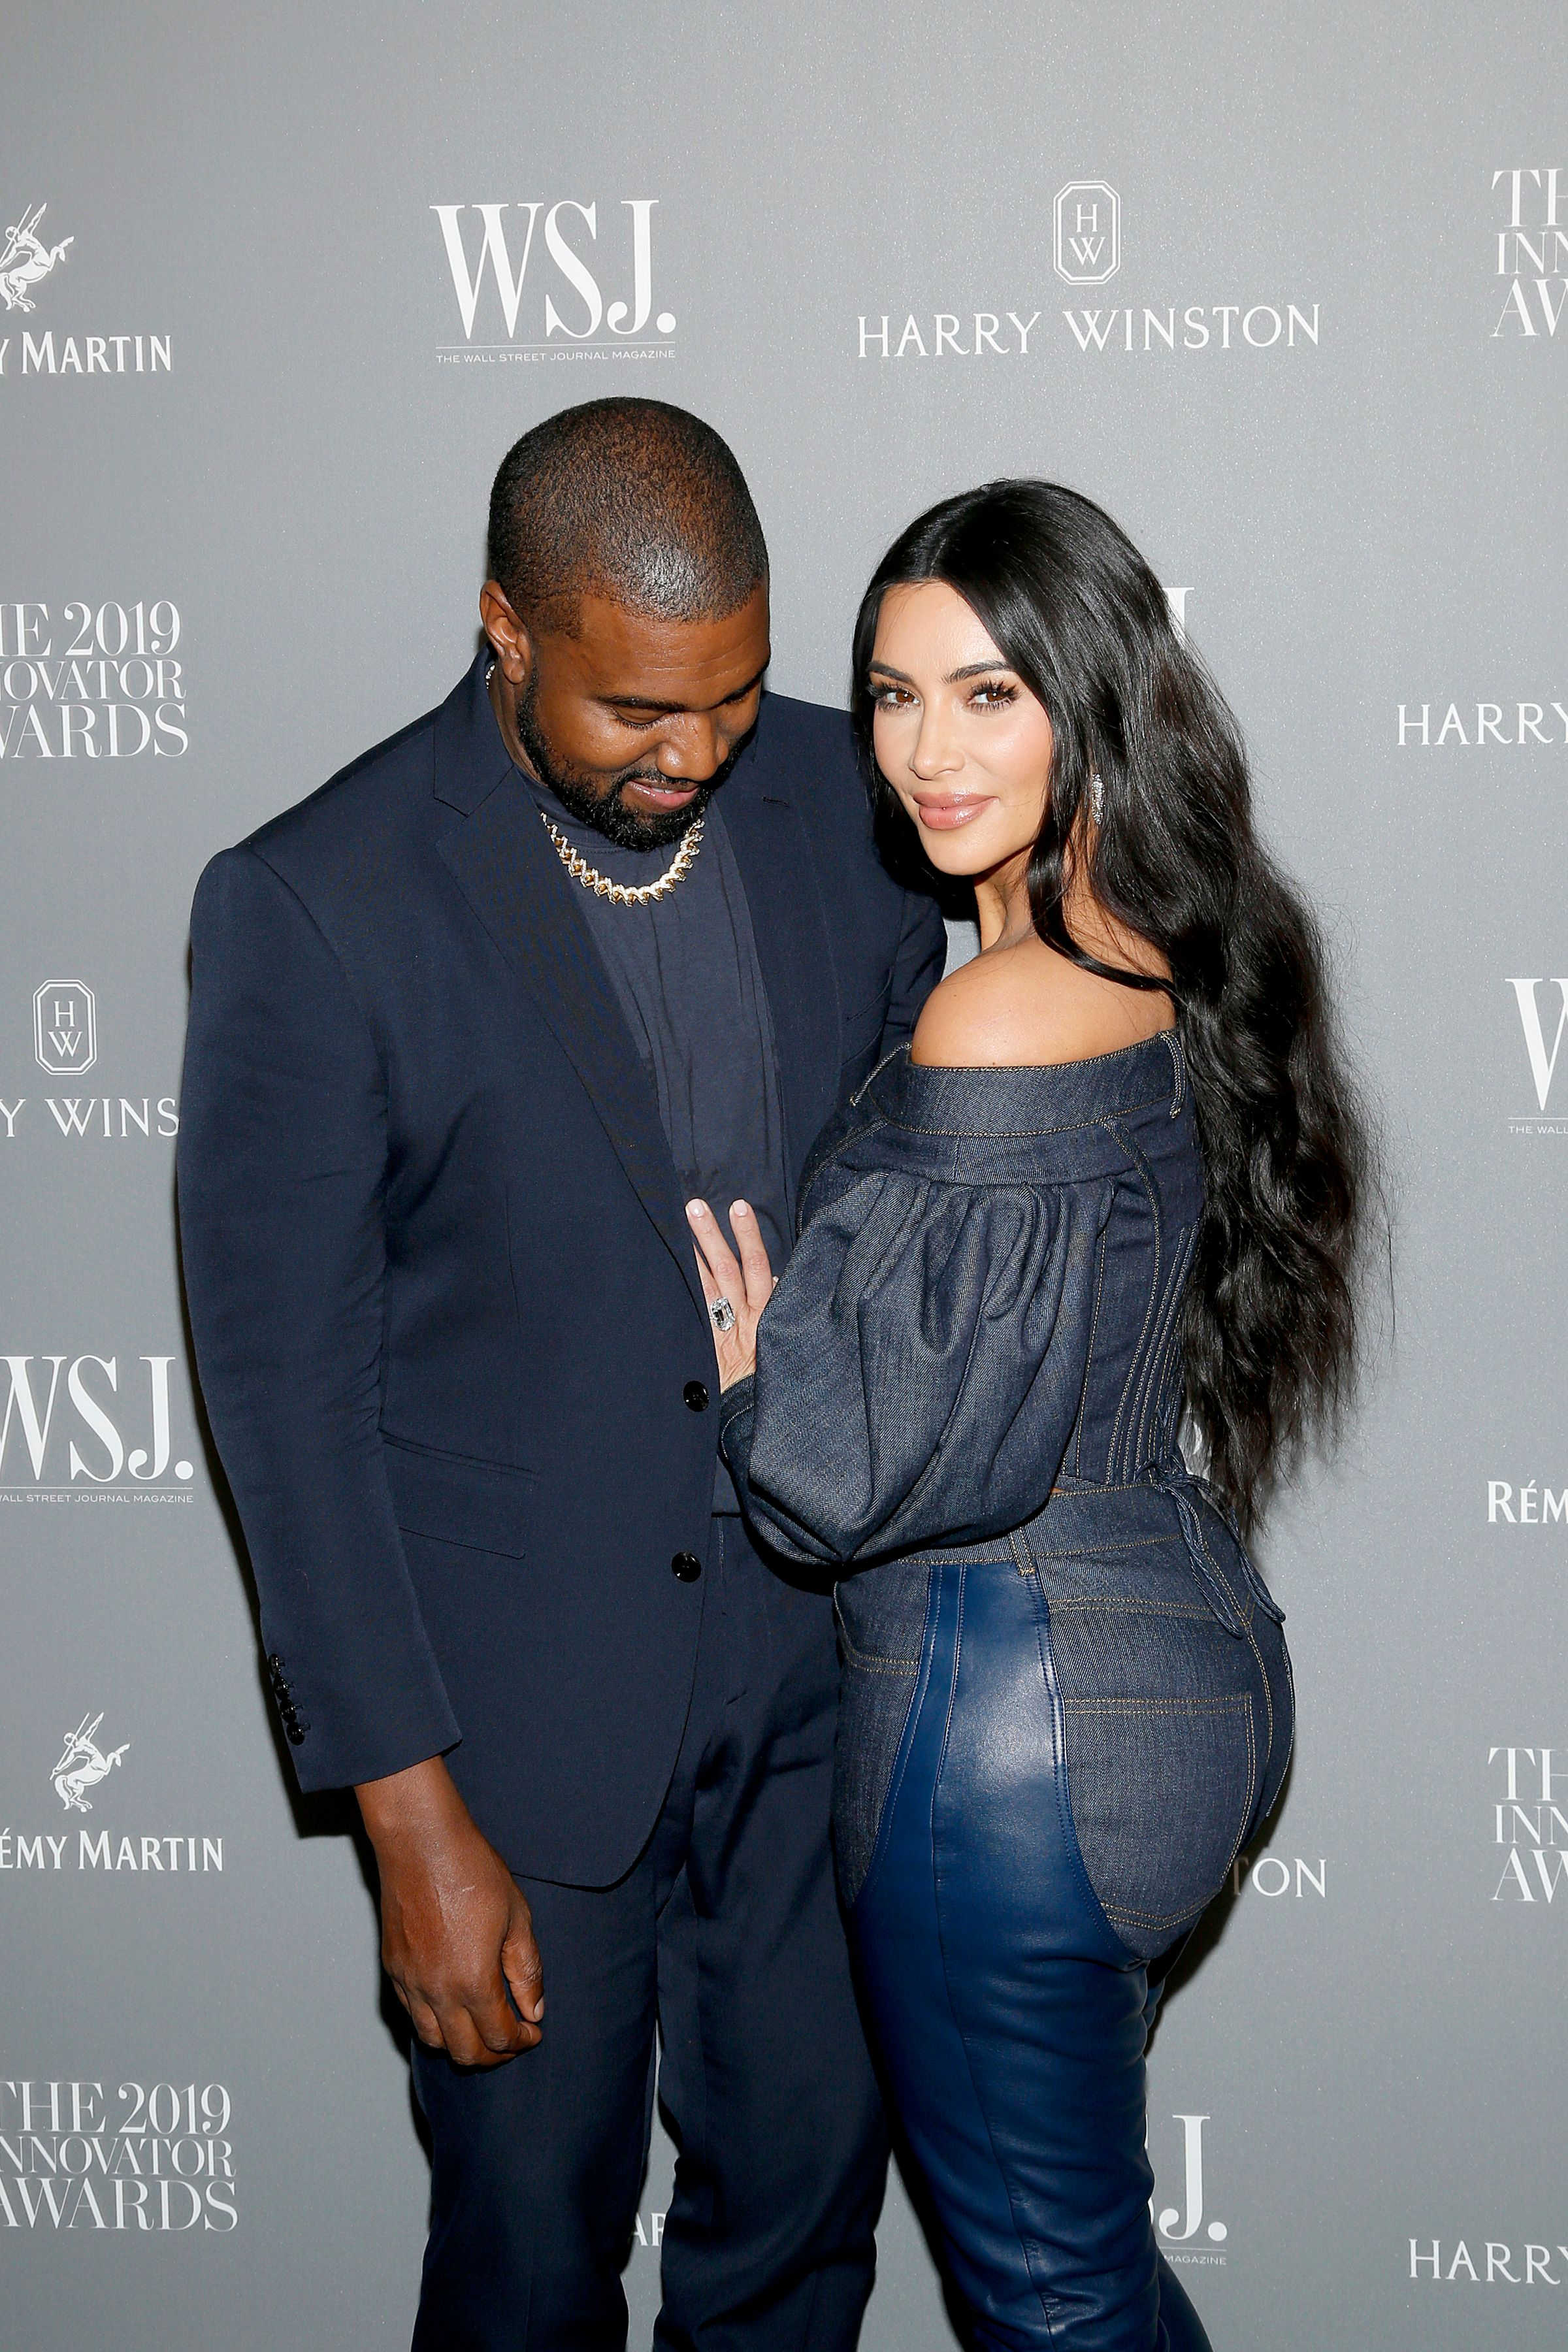 Kanye West and Kim Kardashian West at the WSJ Magazine 2019 Innovator Awards on November 06, 2019 | Source: Getty Images